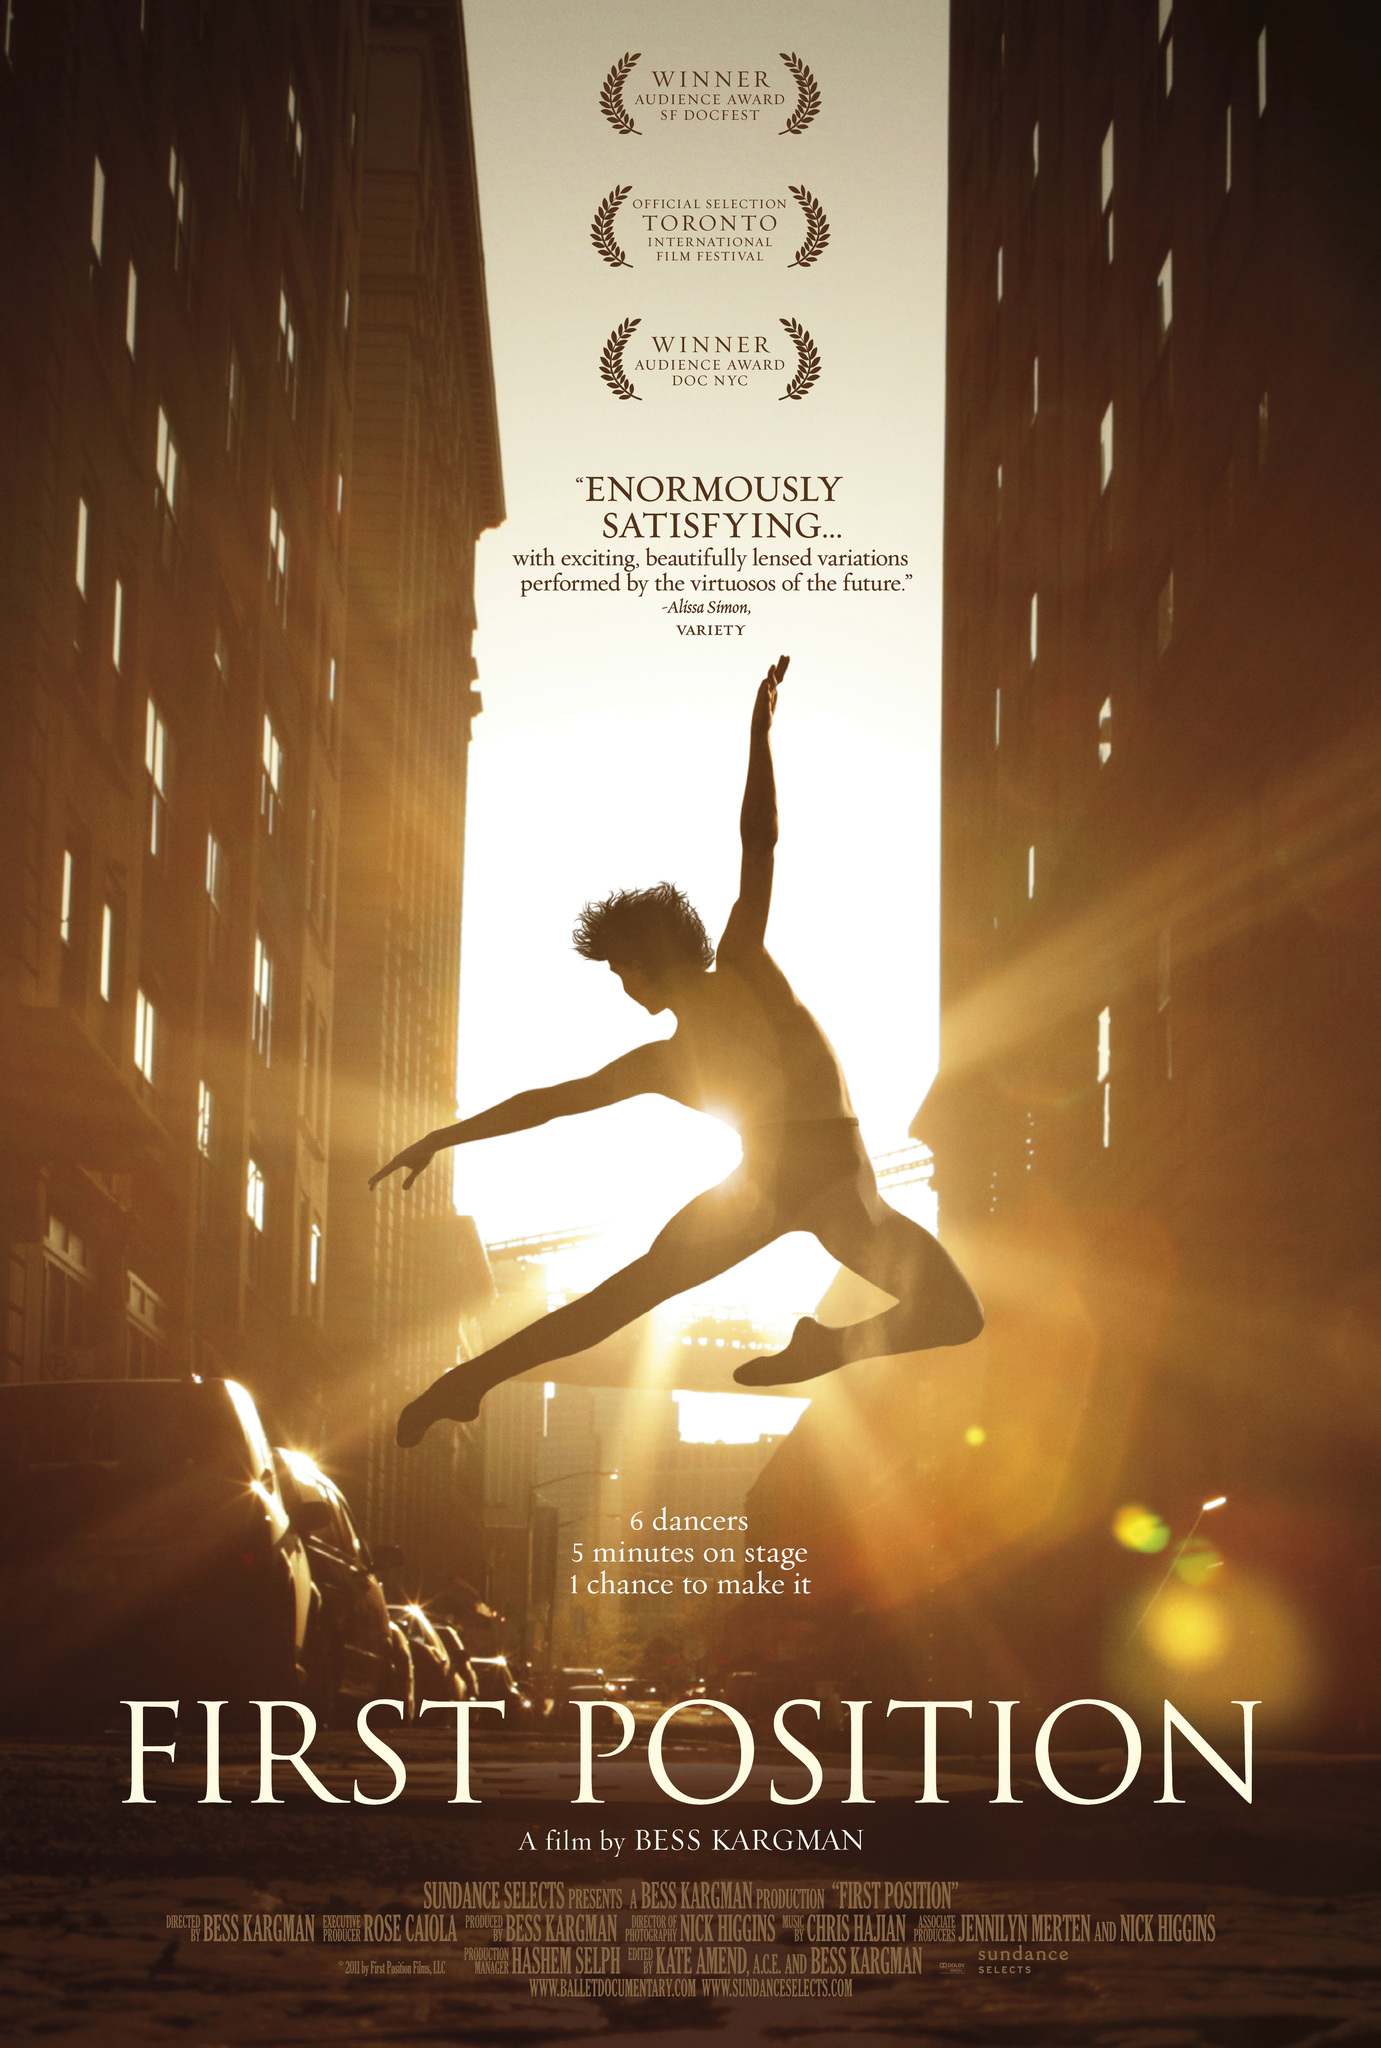 (2011) A documentary that follows six young dancers from around the world as they prepare for the Youth America Grand Prix, one of the most prestigious ballet competitions in the world. -